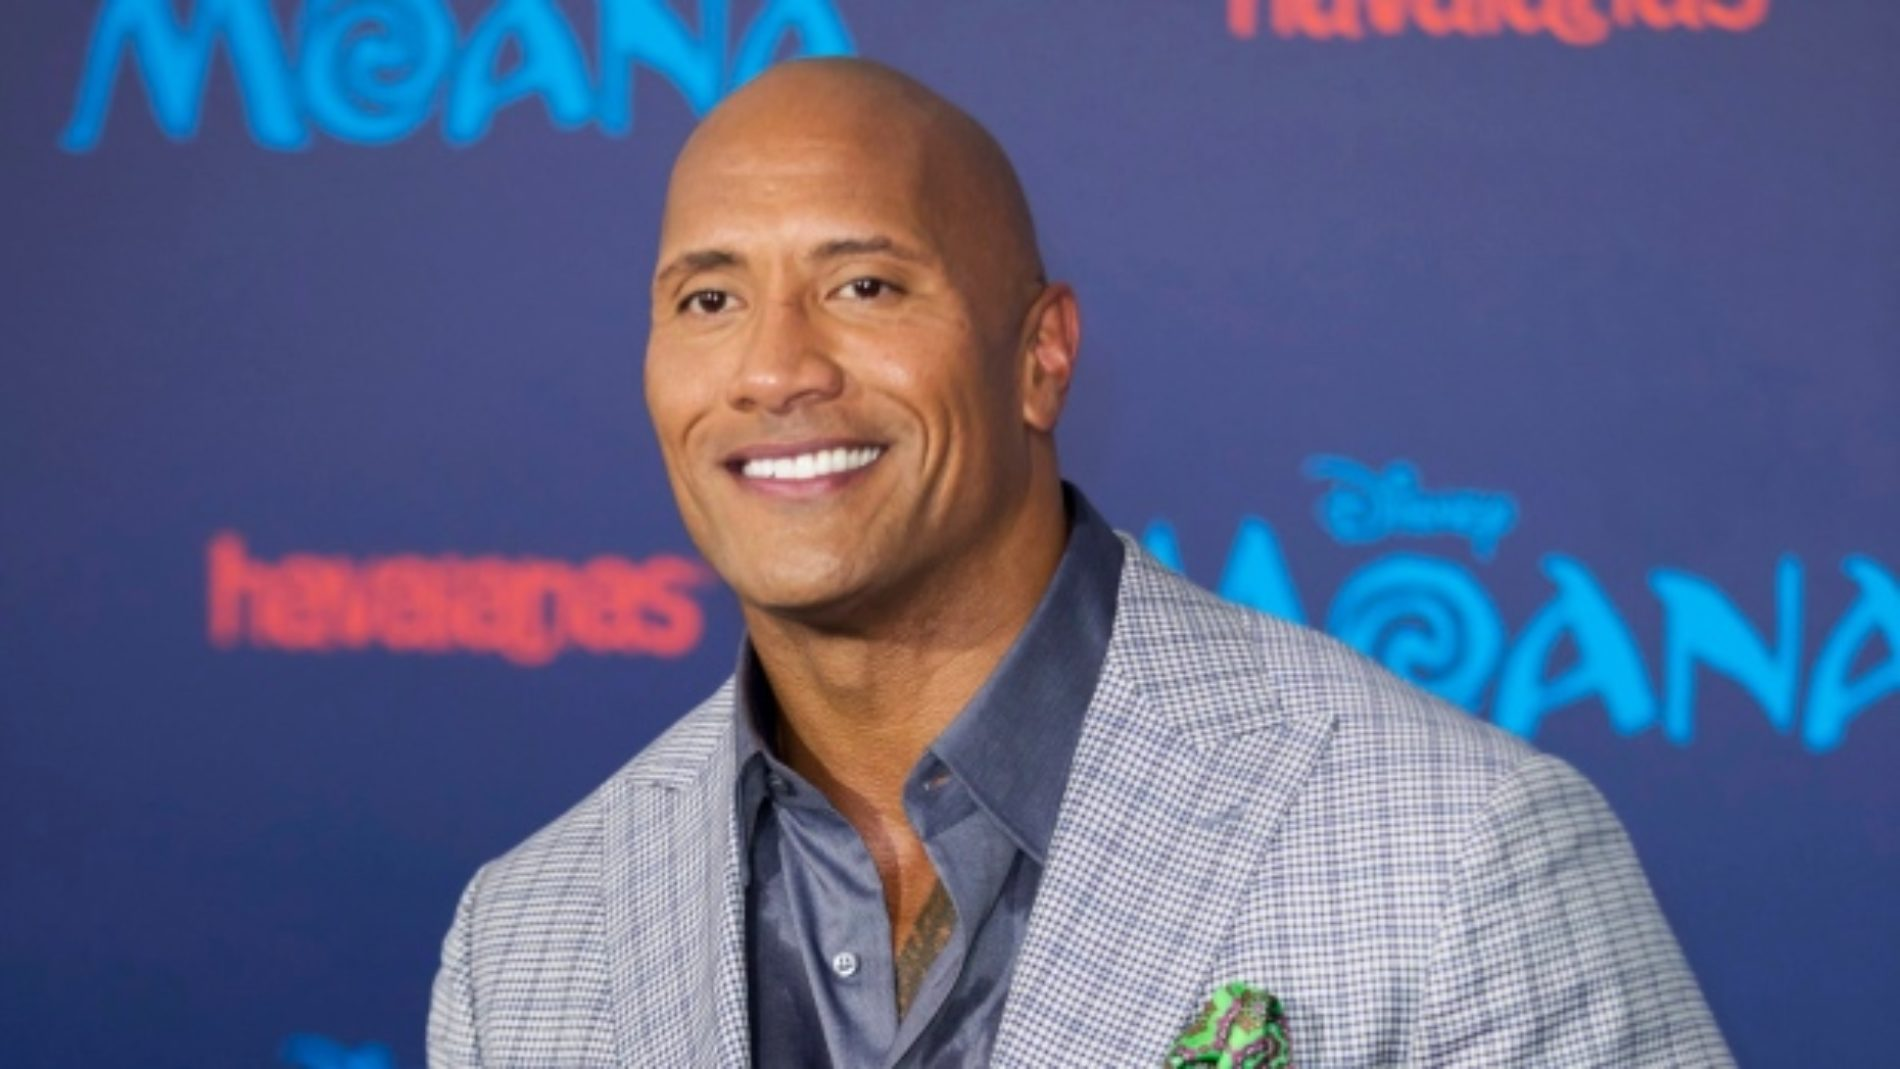 Dwayne 'The Rock' Johnson Is 2016's Sexiest Man Alive!